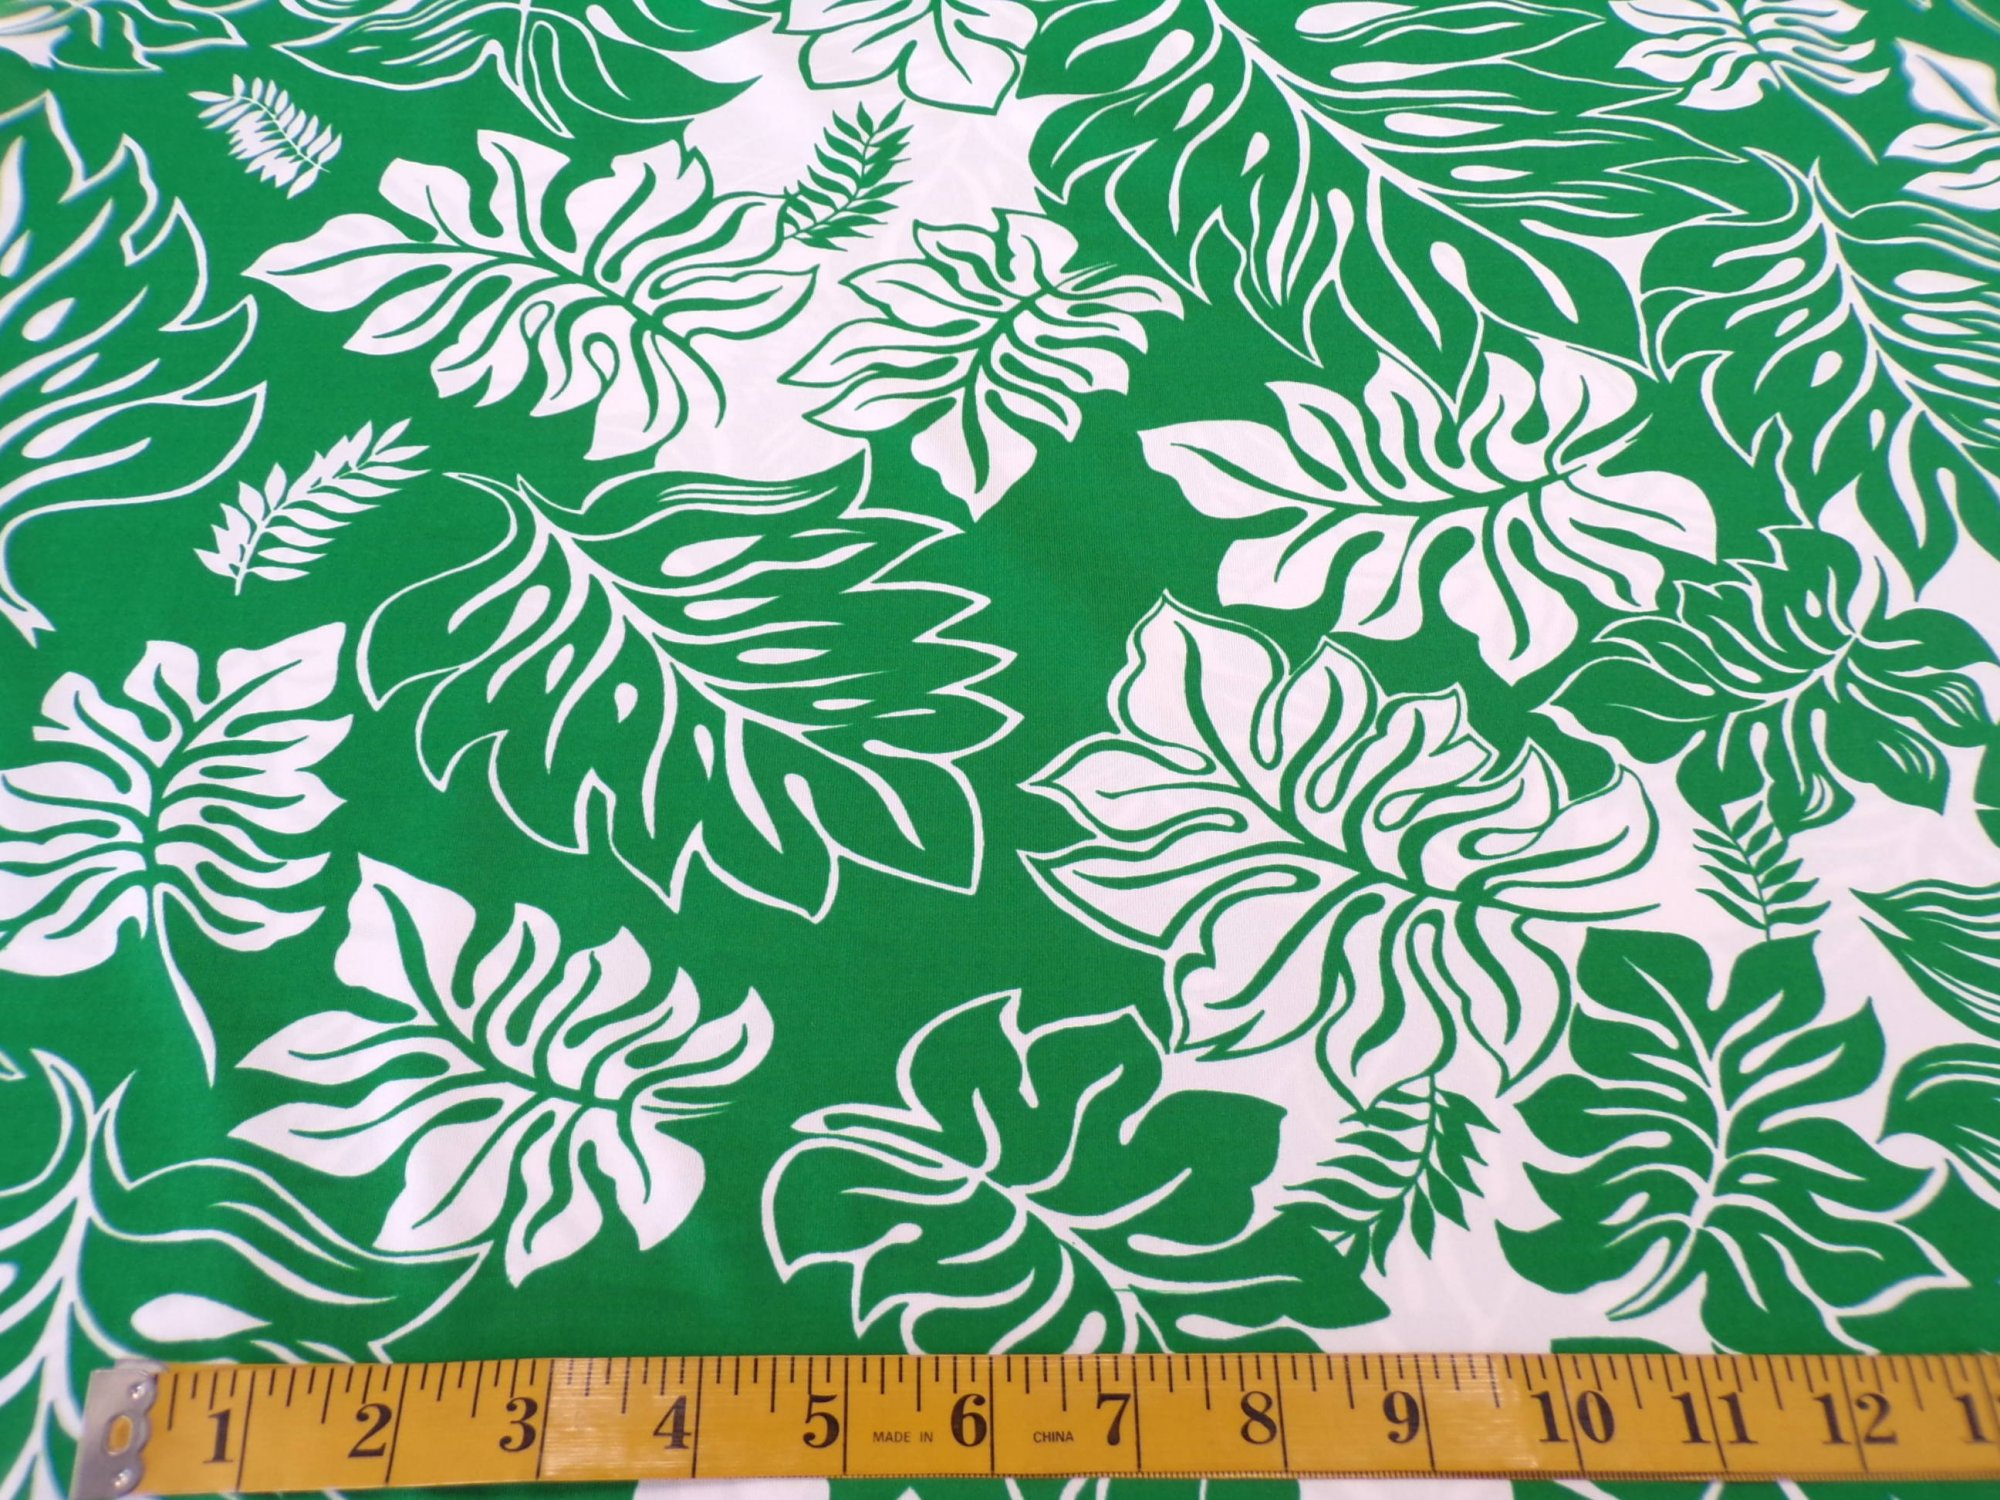 Swimwear - Green and White Leaf Print